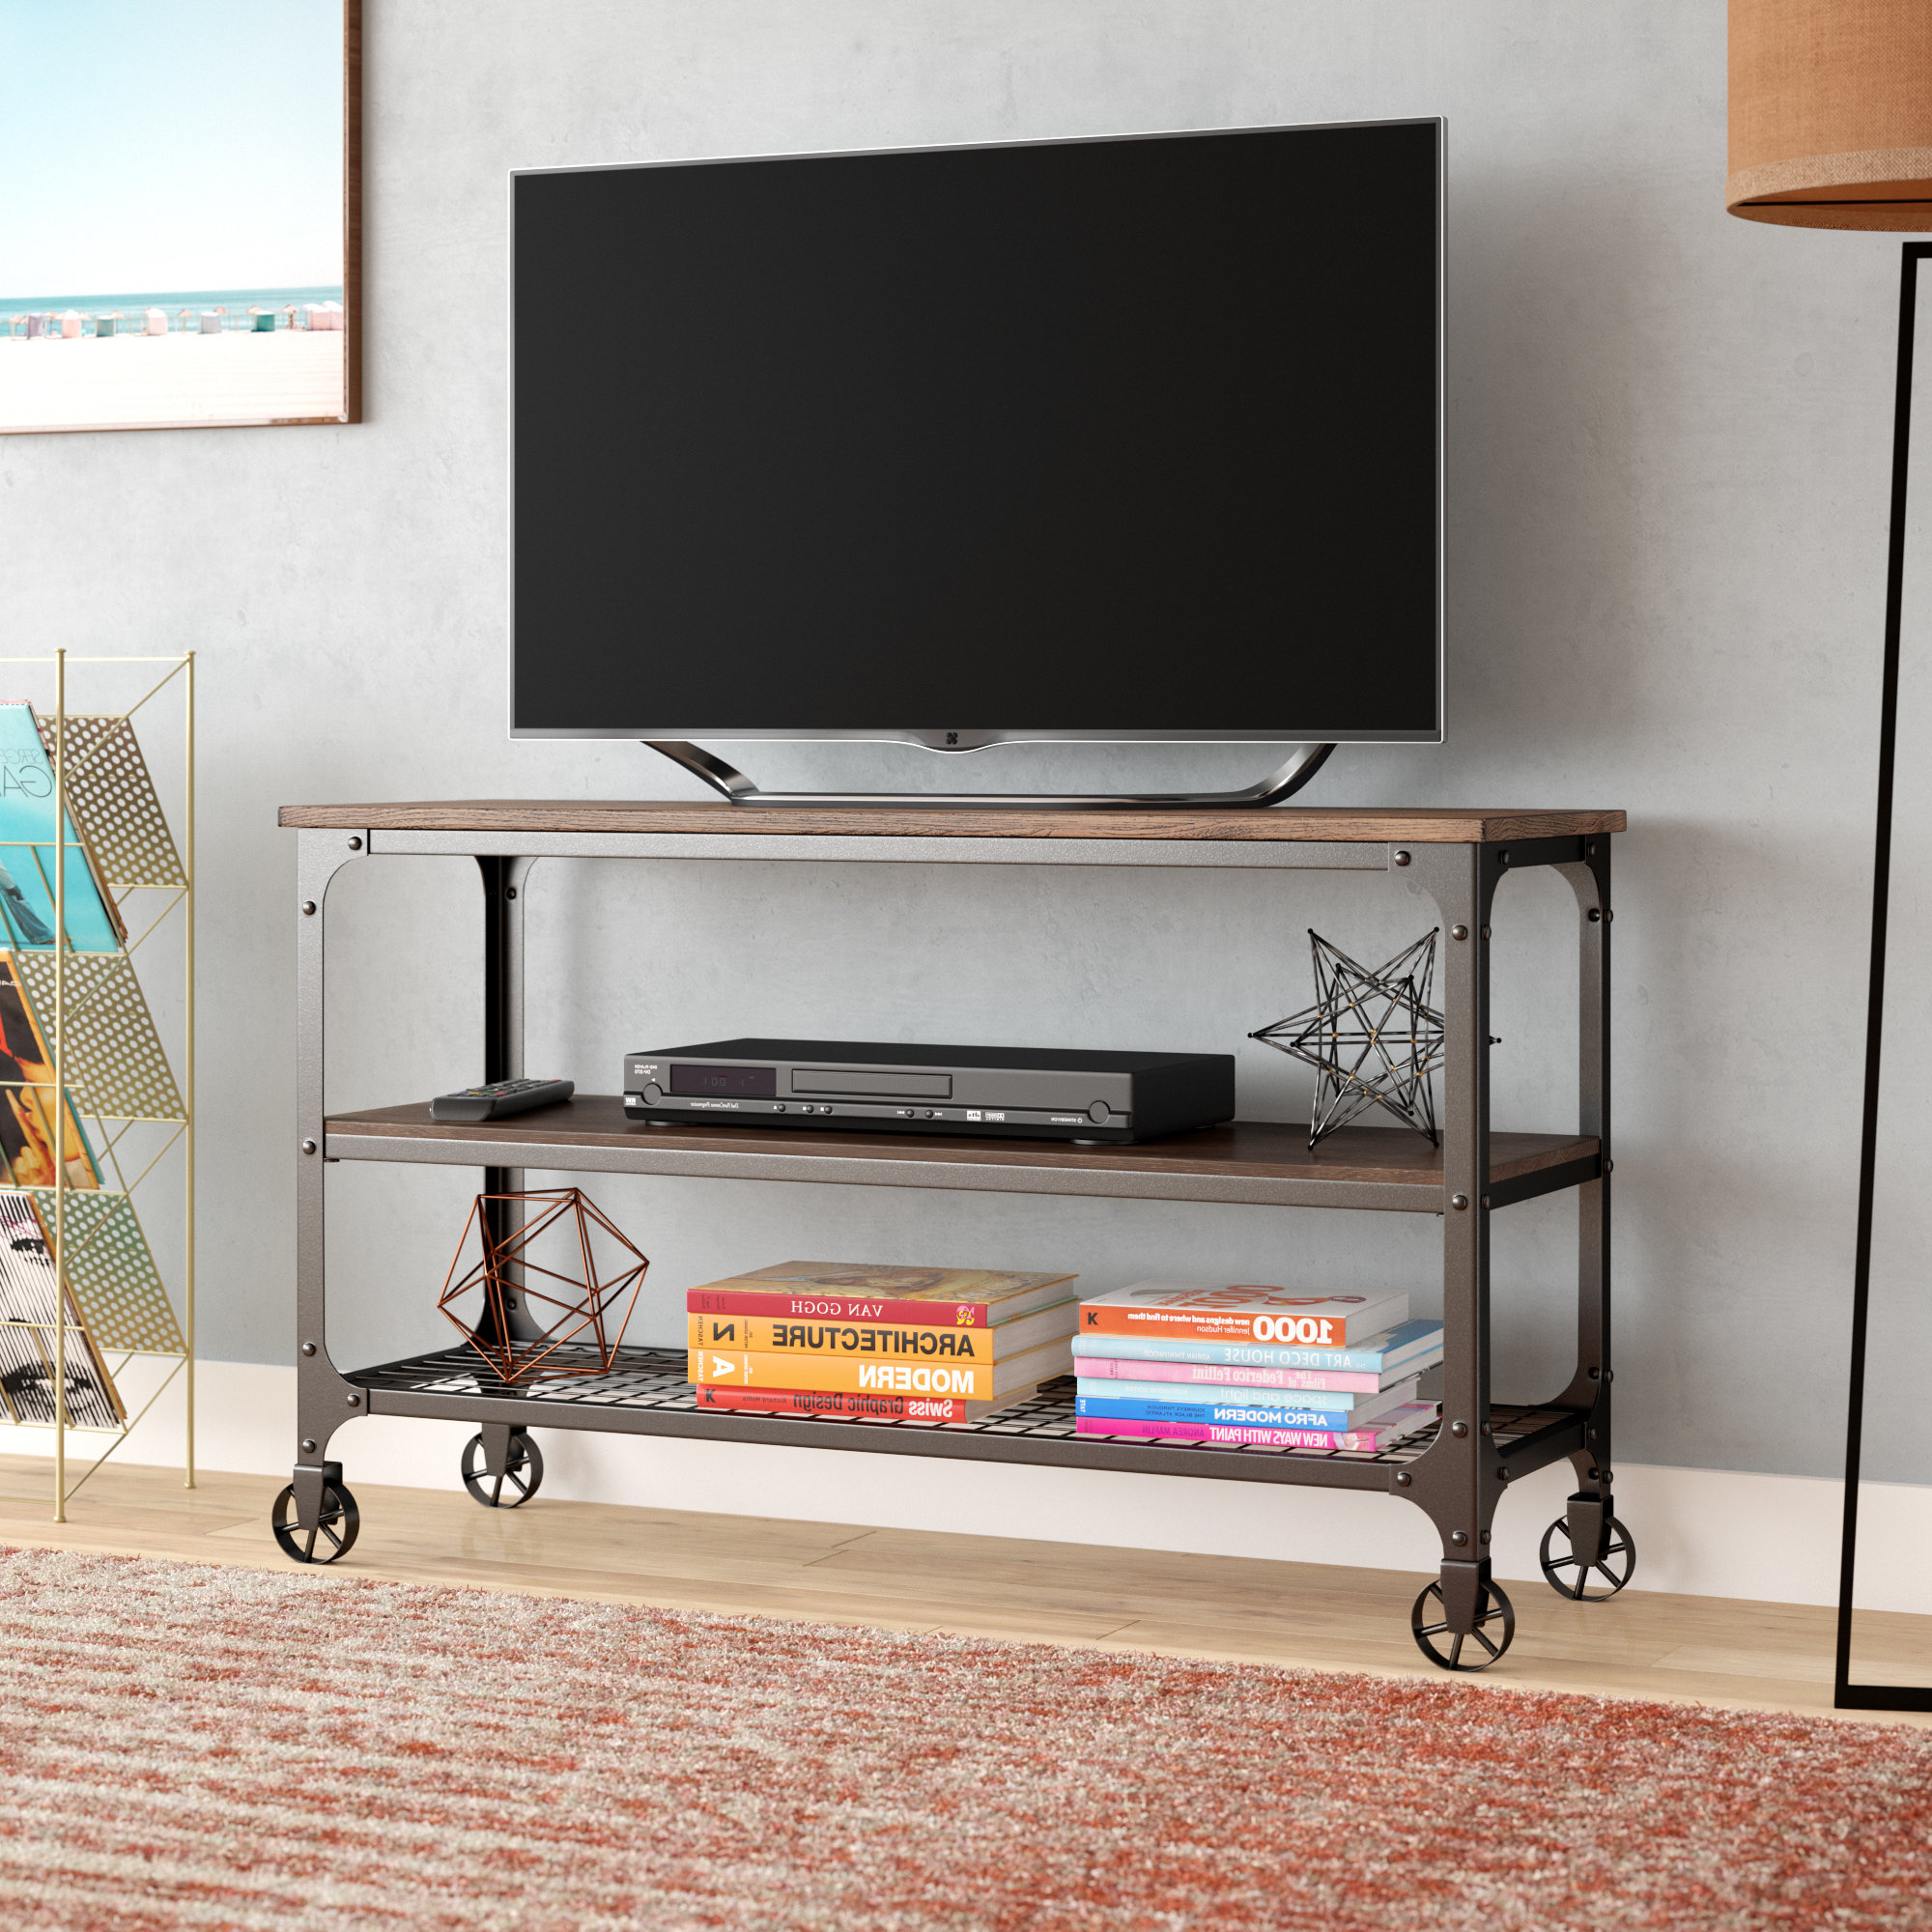 Wayfair Pertaining To Well Known Casey Umber 54 Inch Tv Stands (View 20 of 20)